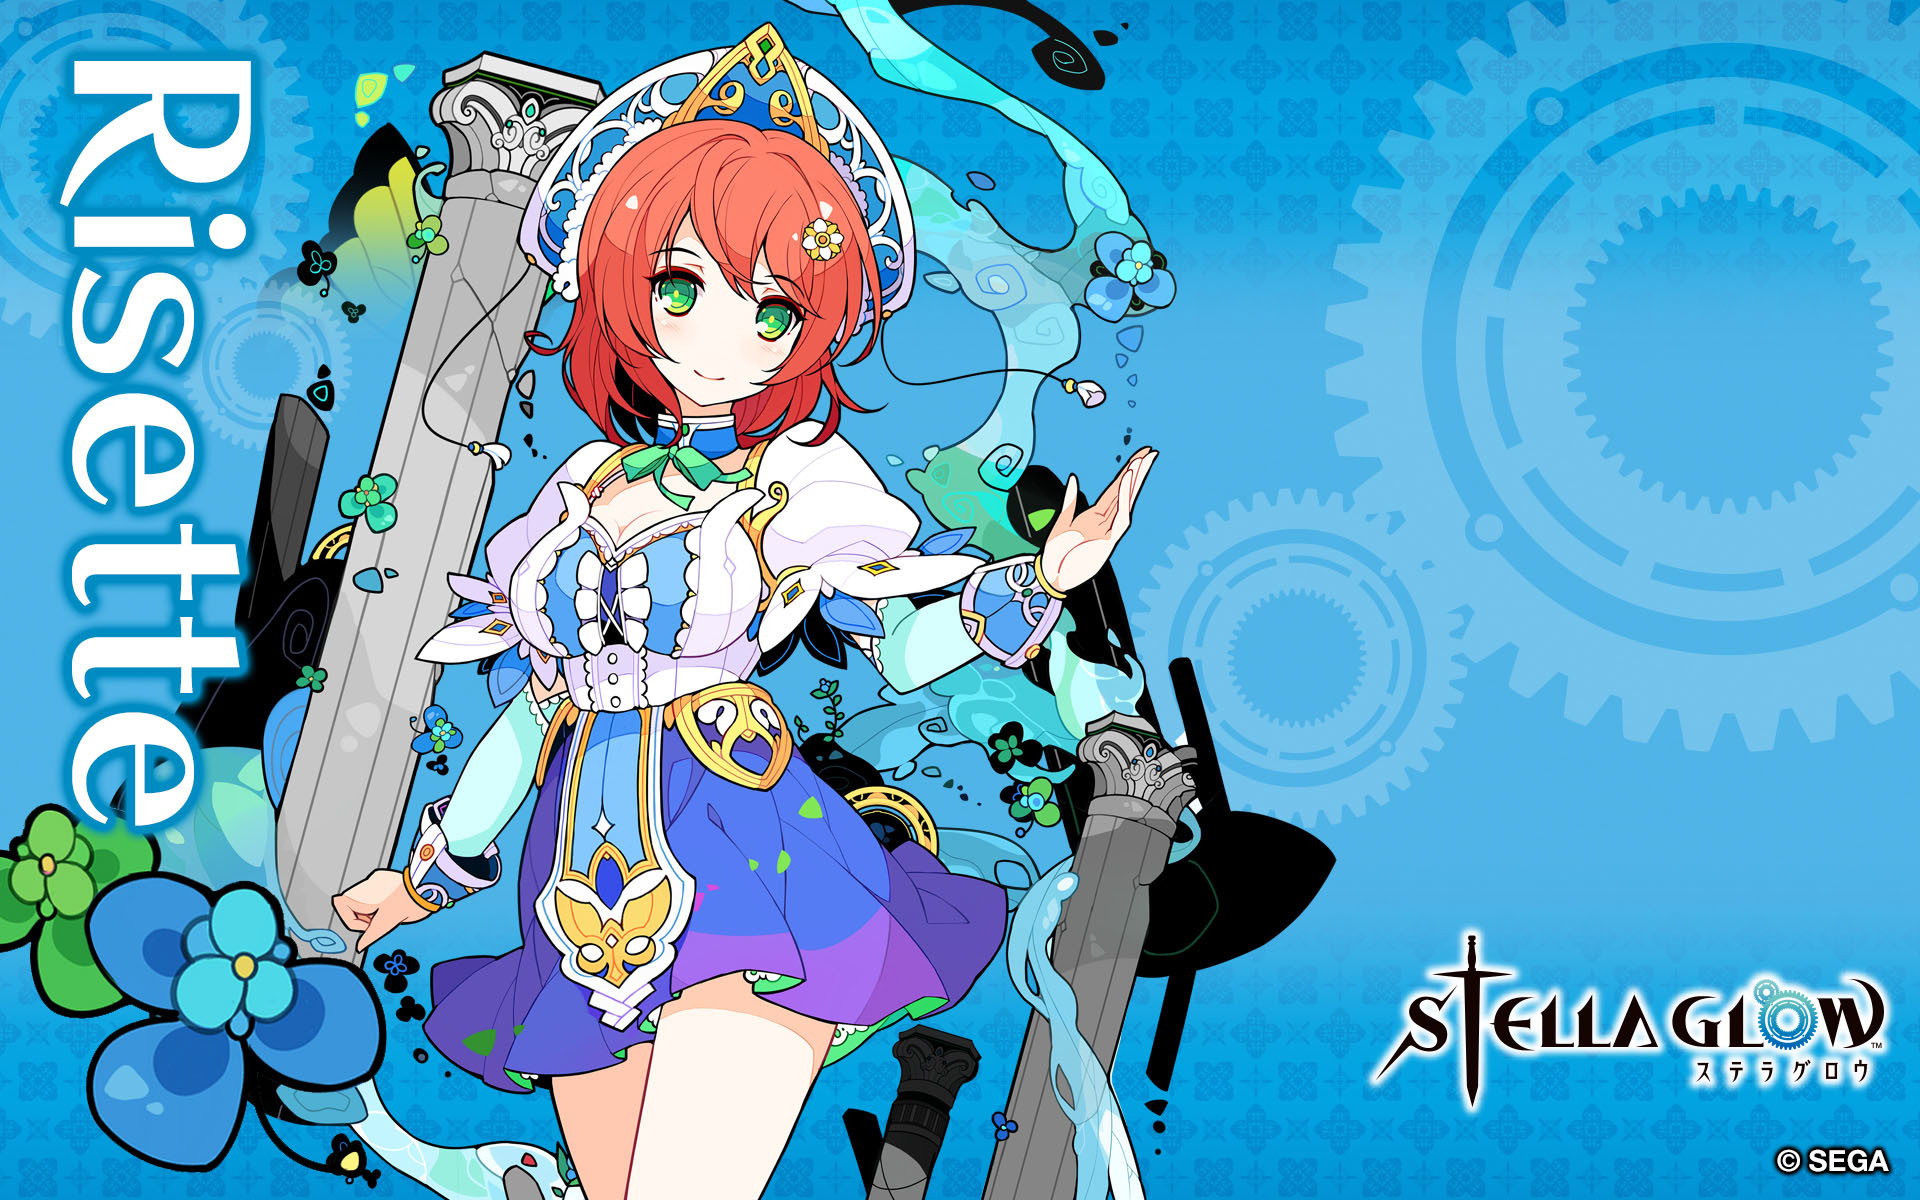 1920x1200 Stella Glow Message Board for 3DS - GameFAQs